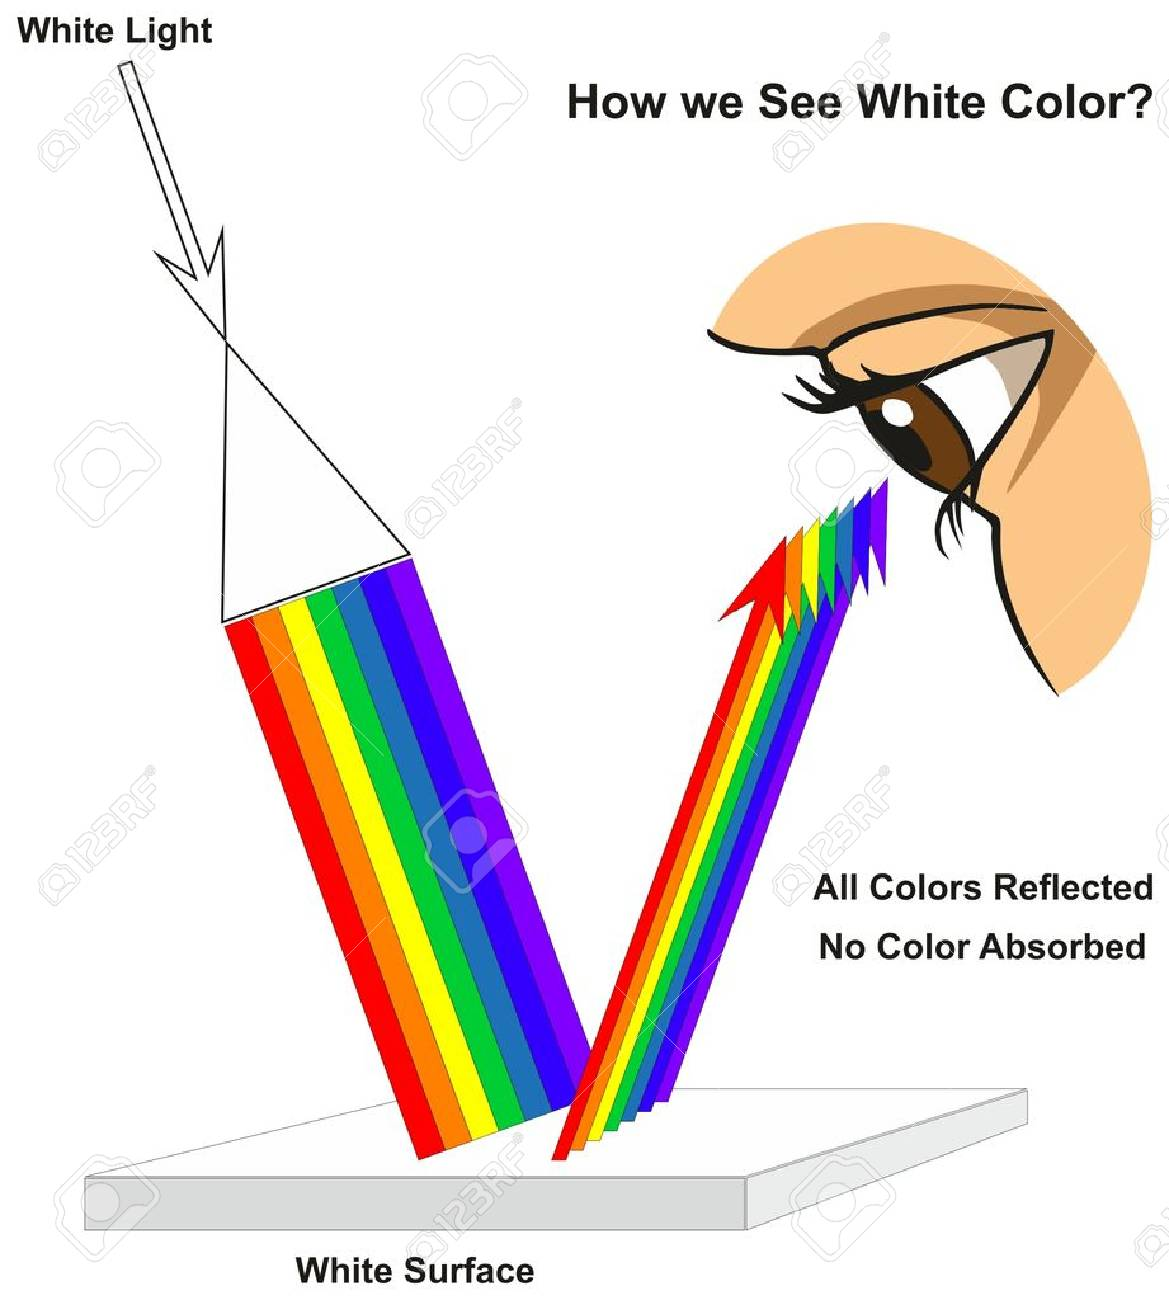 How we See White Color infographic diagram showing visible spectrum light on surface and colors reflected or absorbed according to its color for physics science education - 87964153